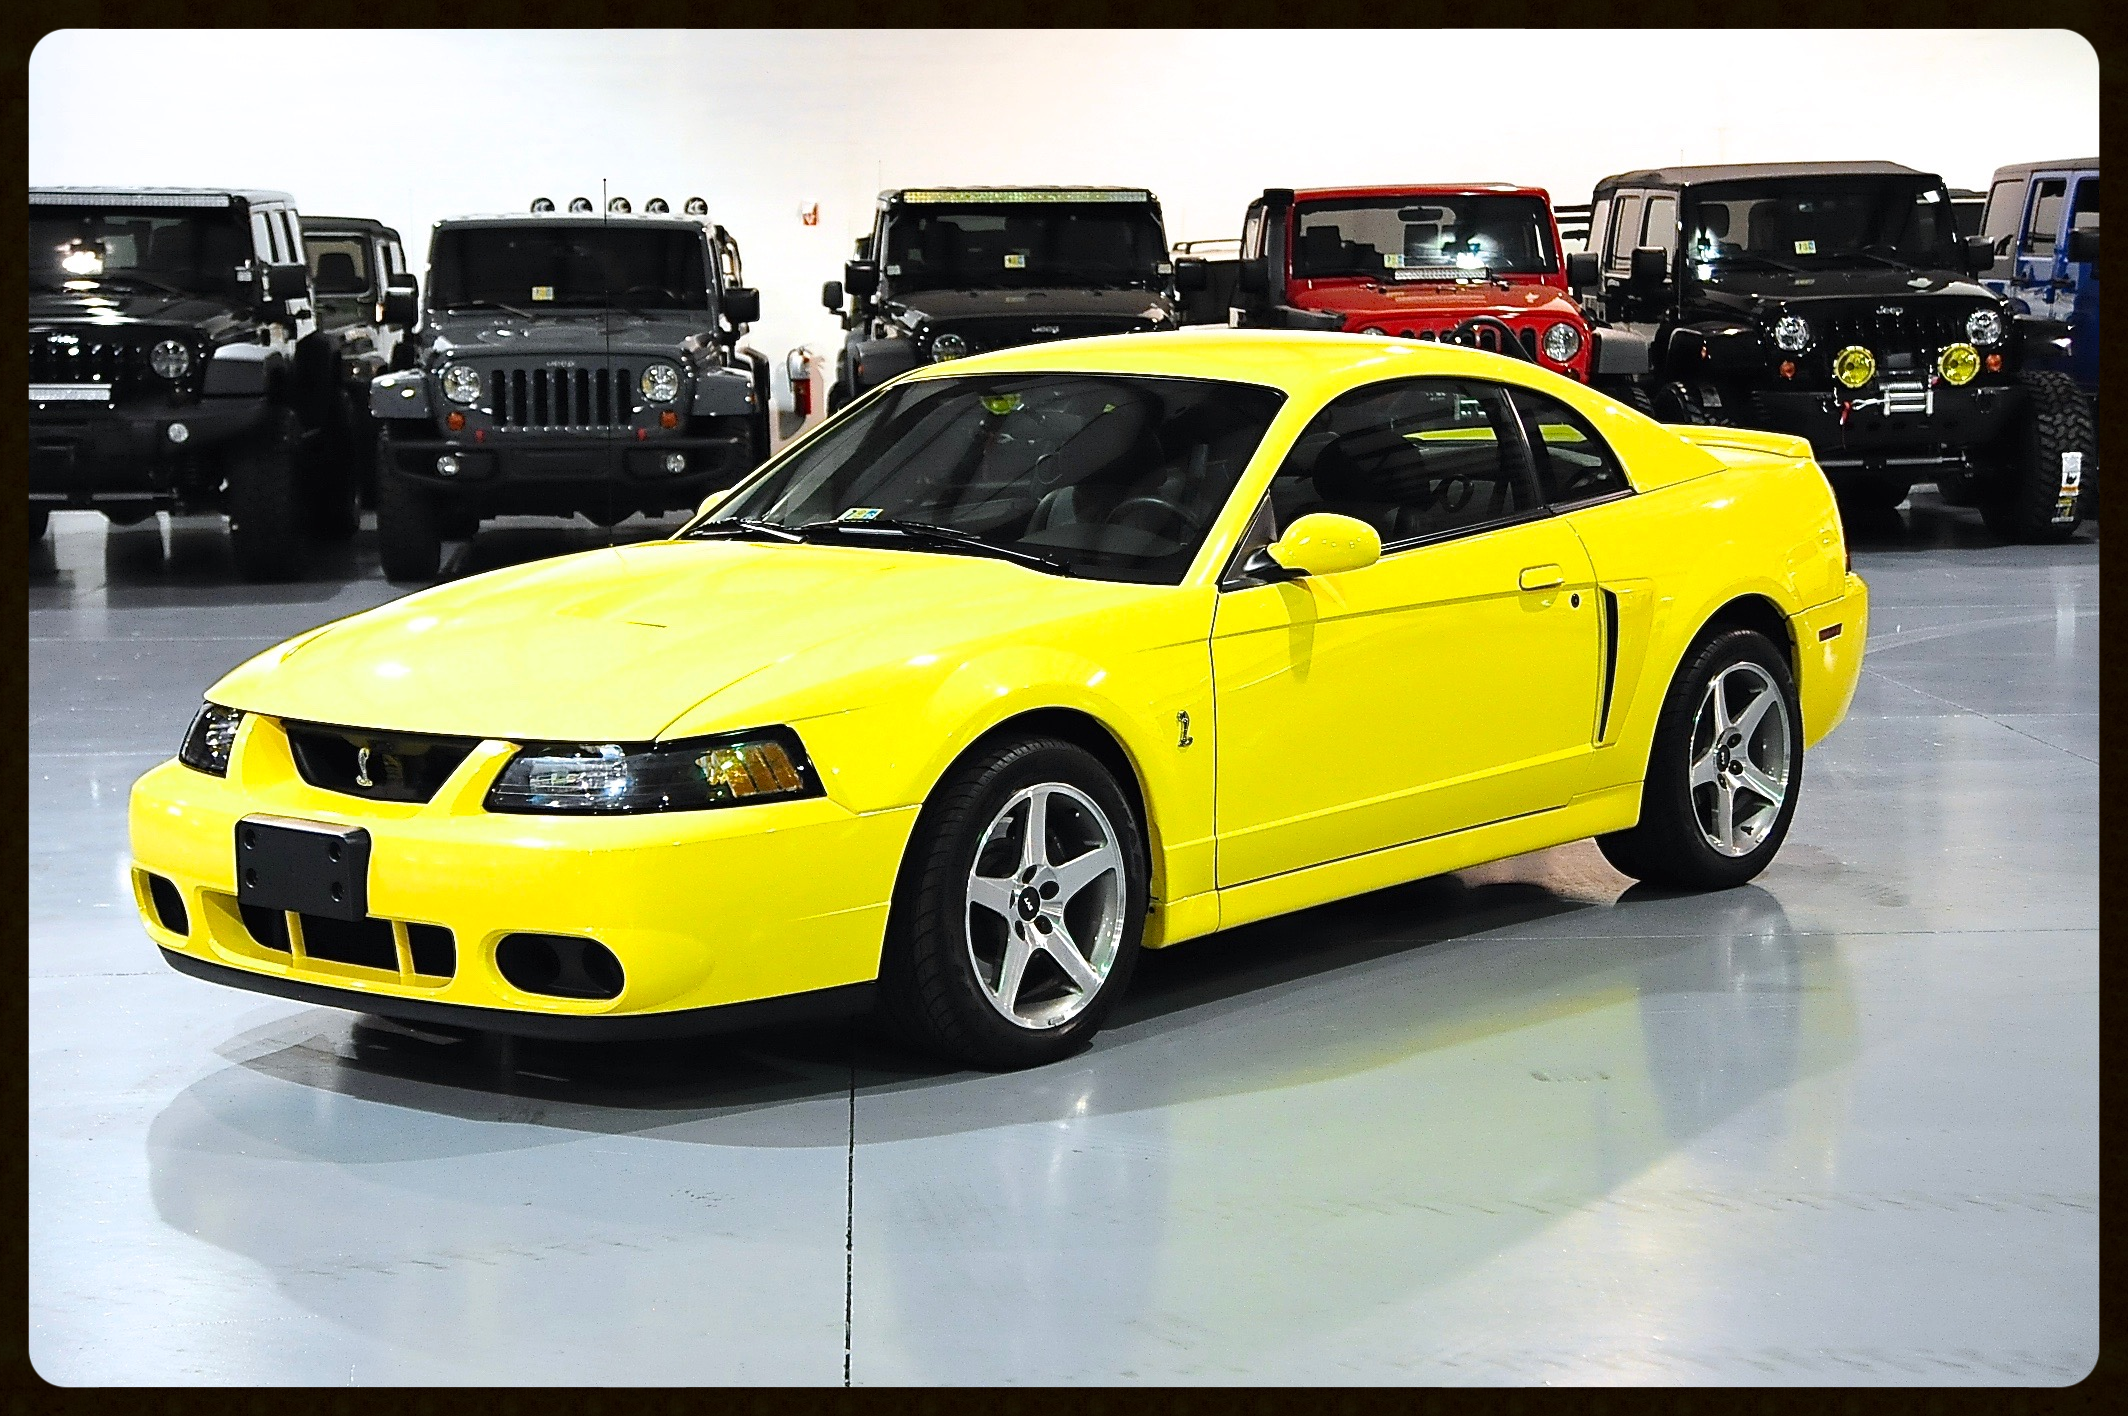 2003 Cobra SVT Terminator....Only 4K Original Miles...All Documents Since Day 1...Click to Enjoy Photos and Video